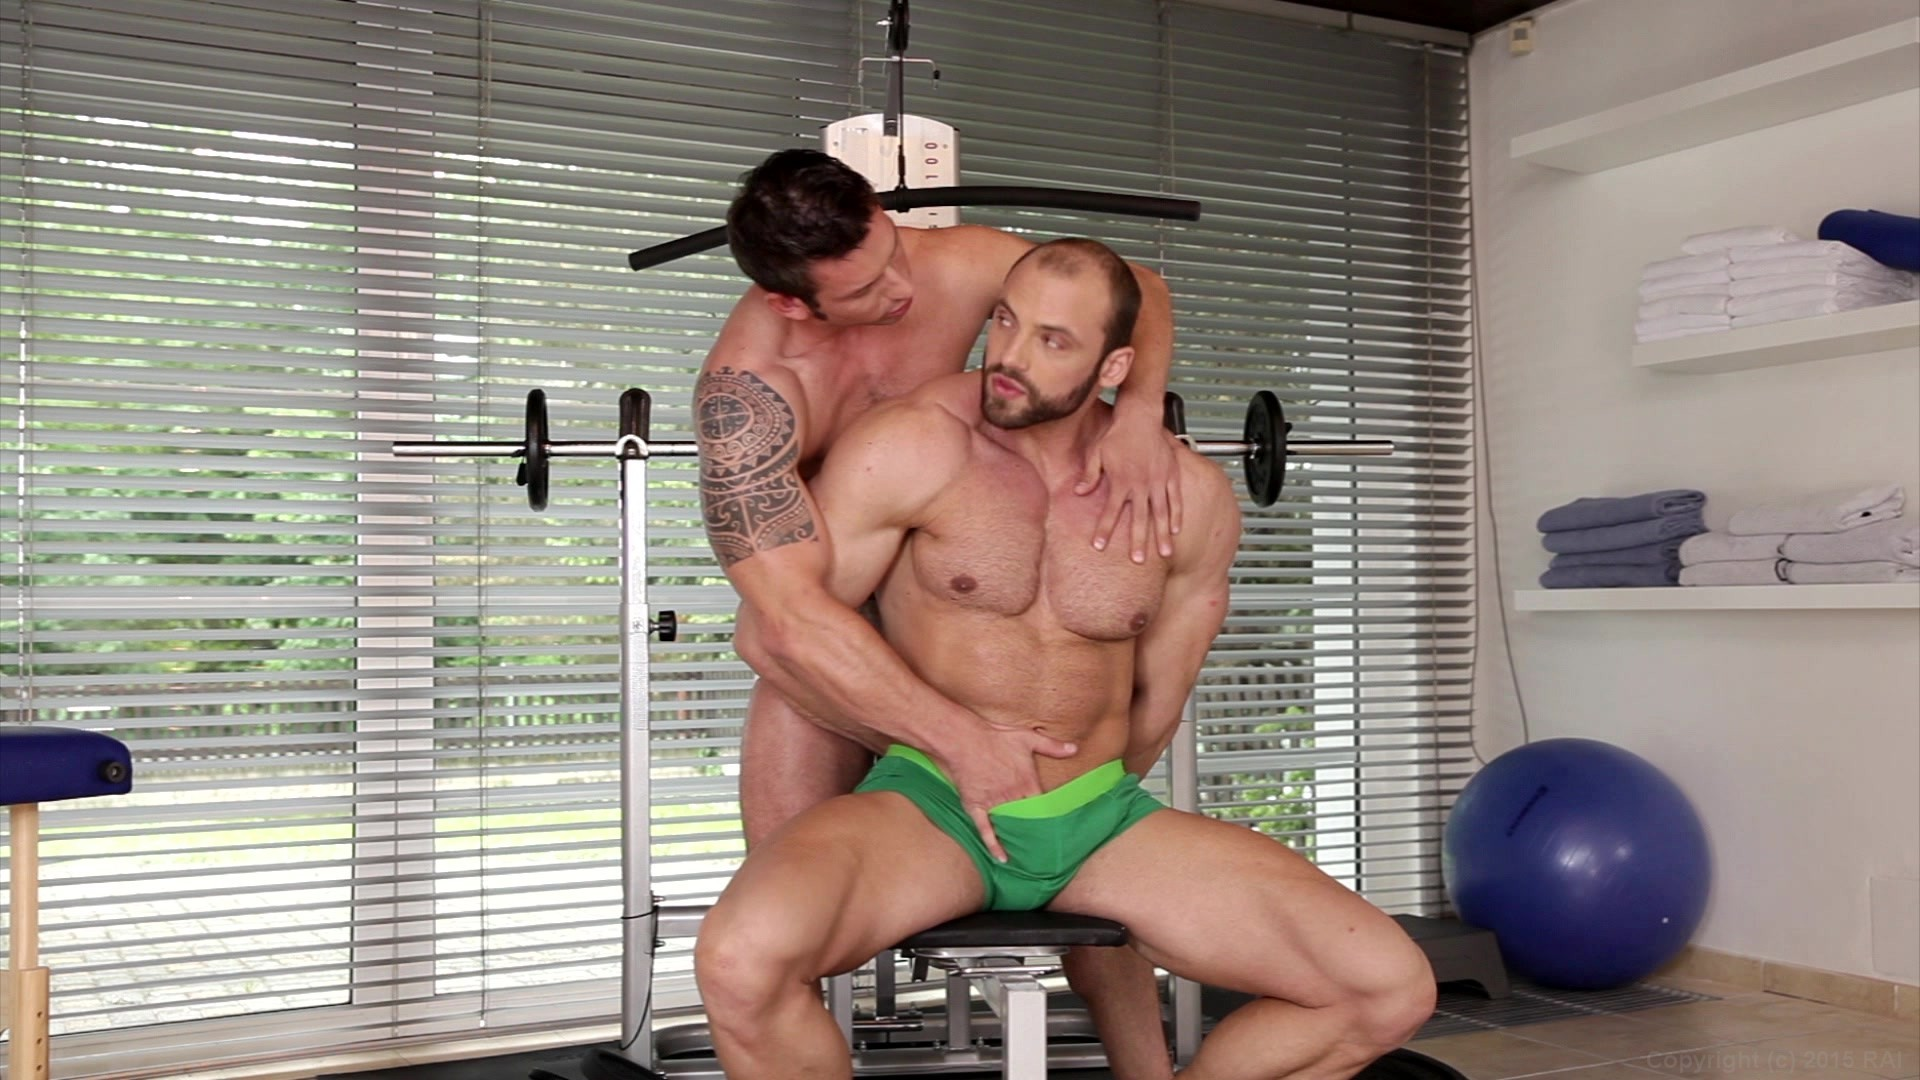 Gay Porn Dvds For Sale 77